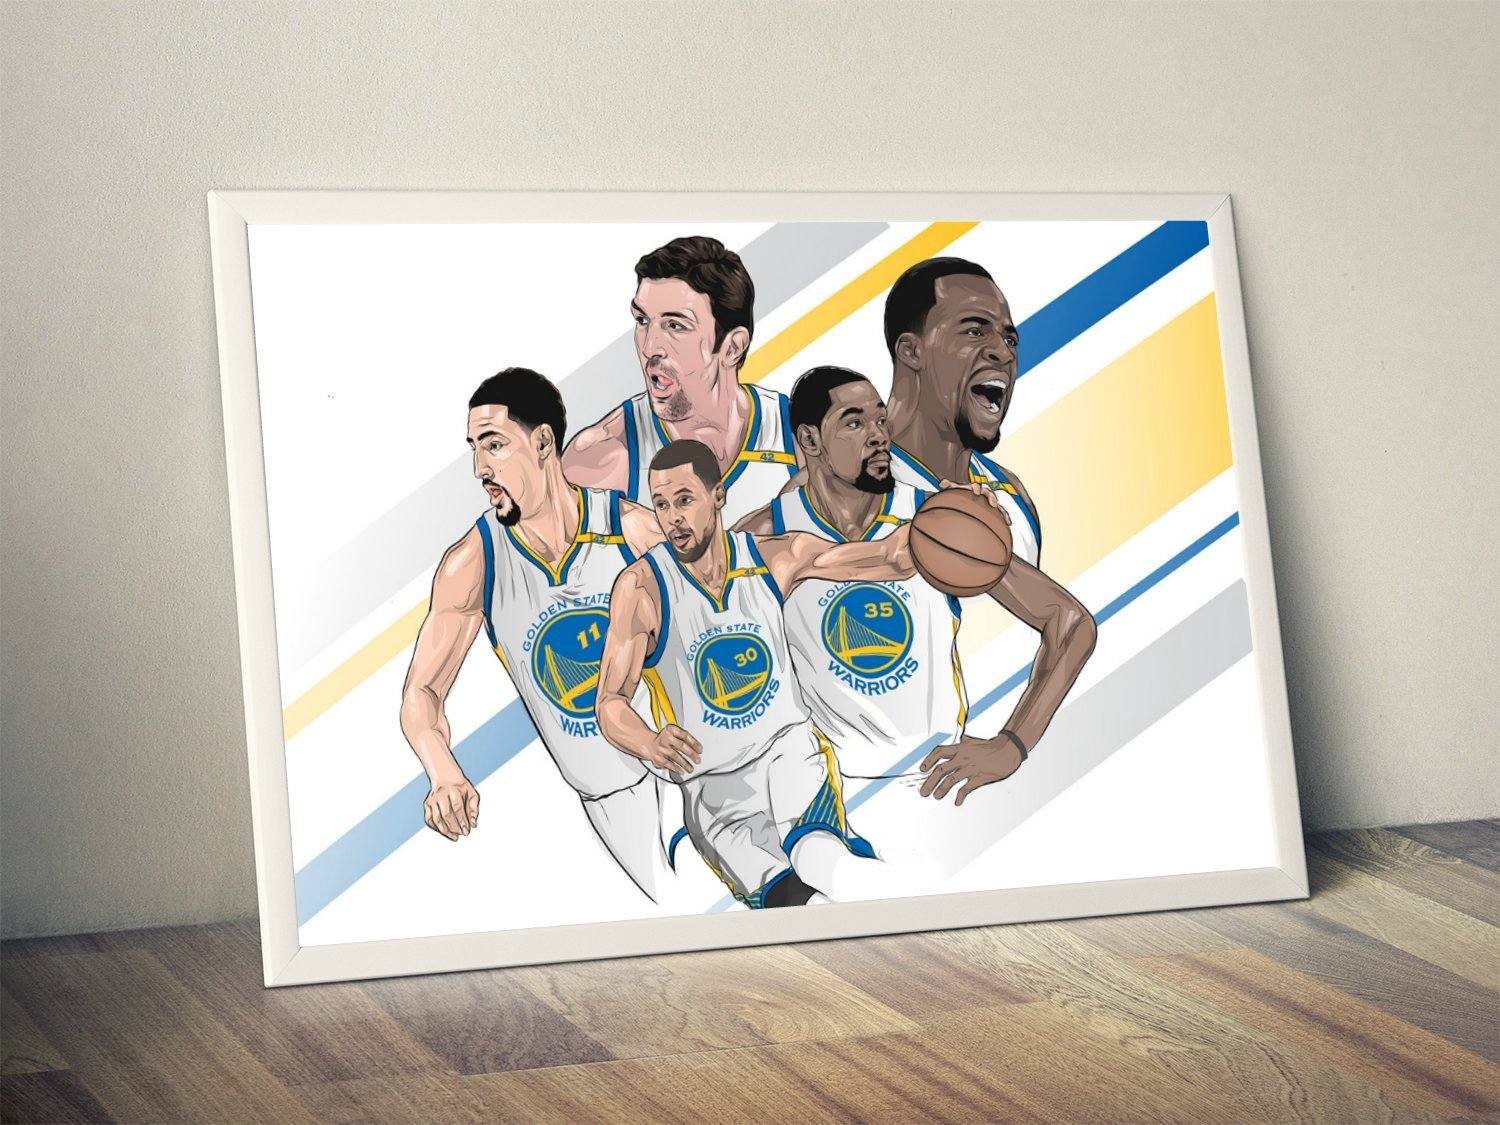 new product db505 39aa0 Amazon.com: Golden State Warriors Limited Poster Artwork ...